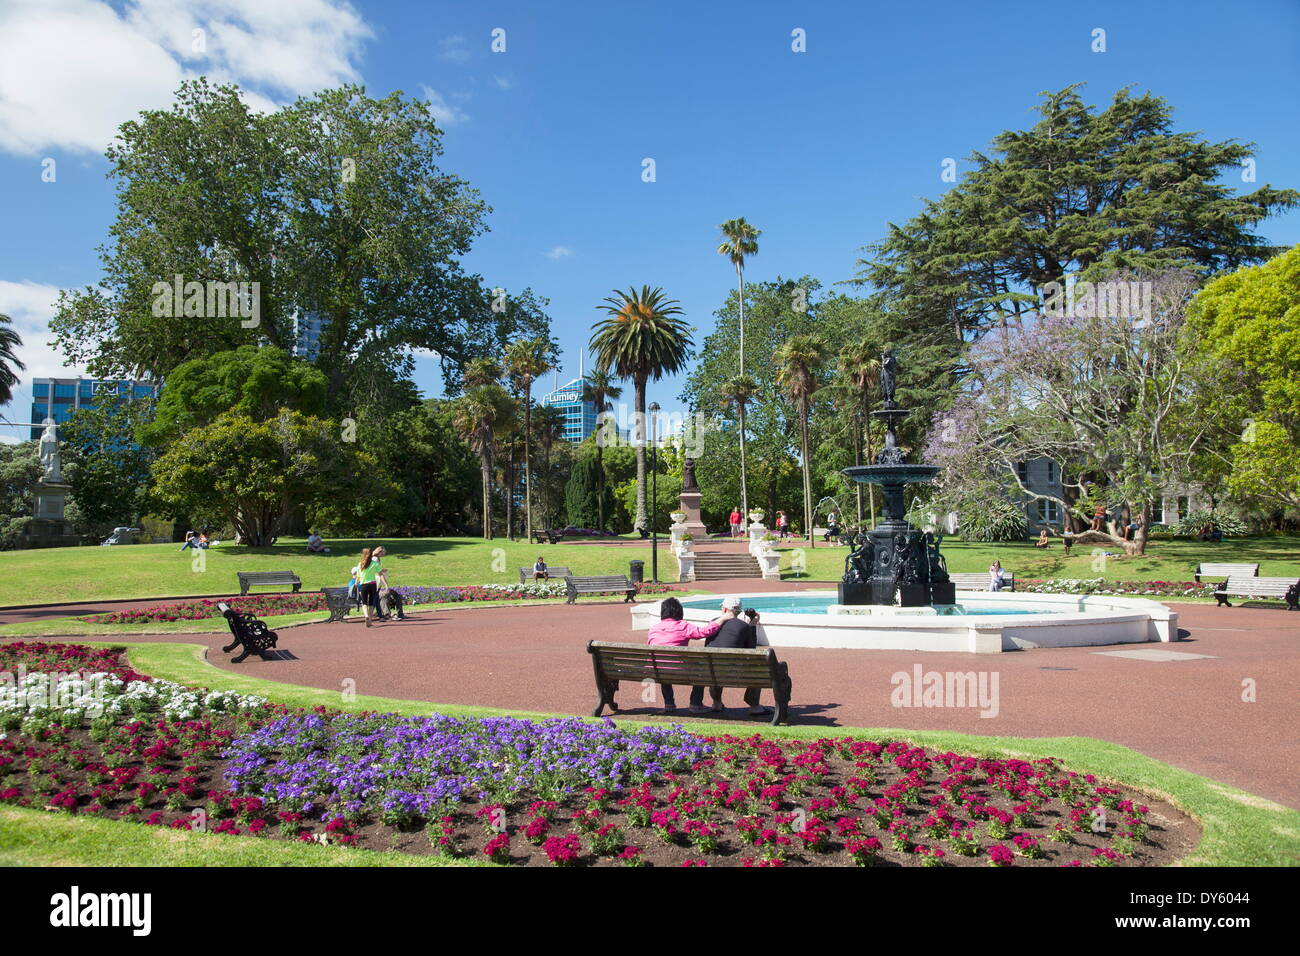 Albert Park, Auckland, North Island, New Zealand, Pacific - Stock Image